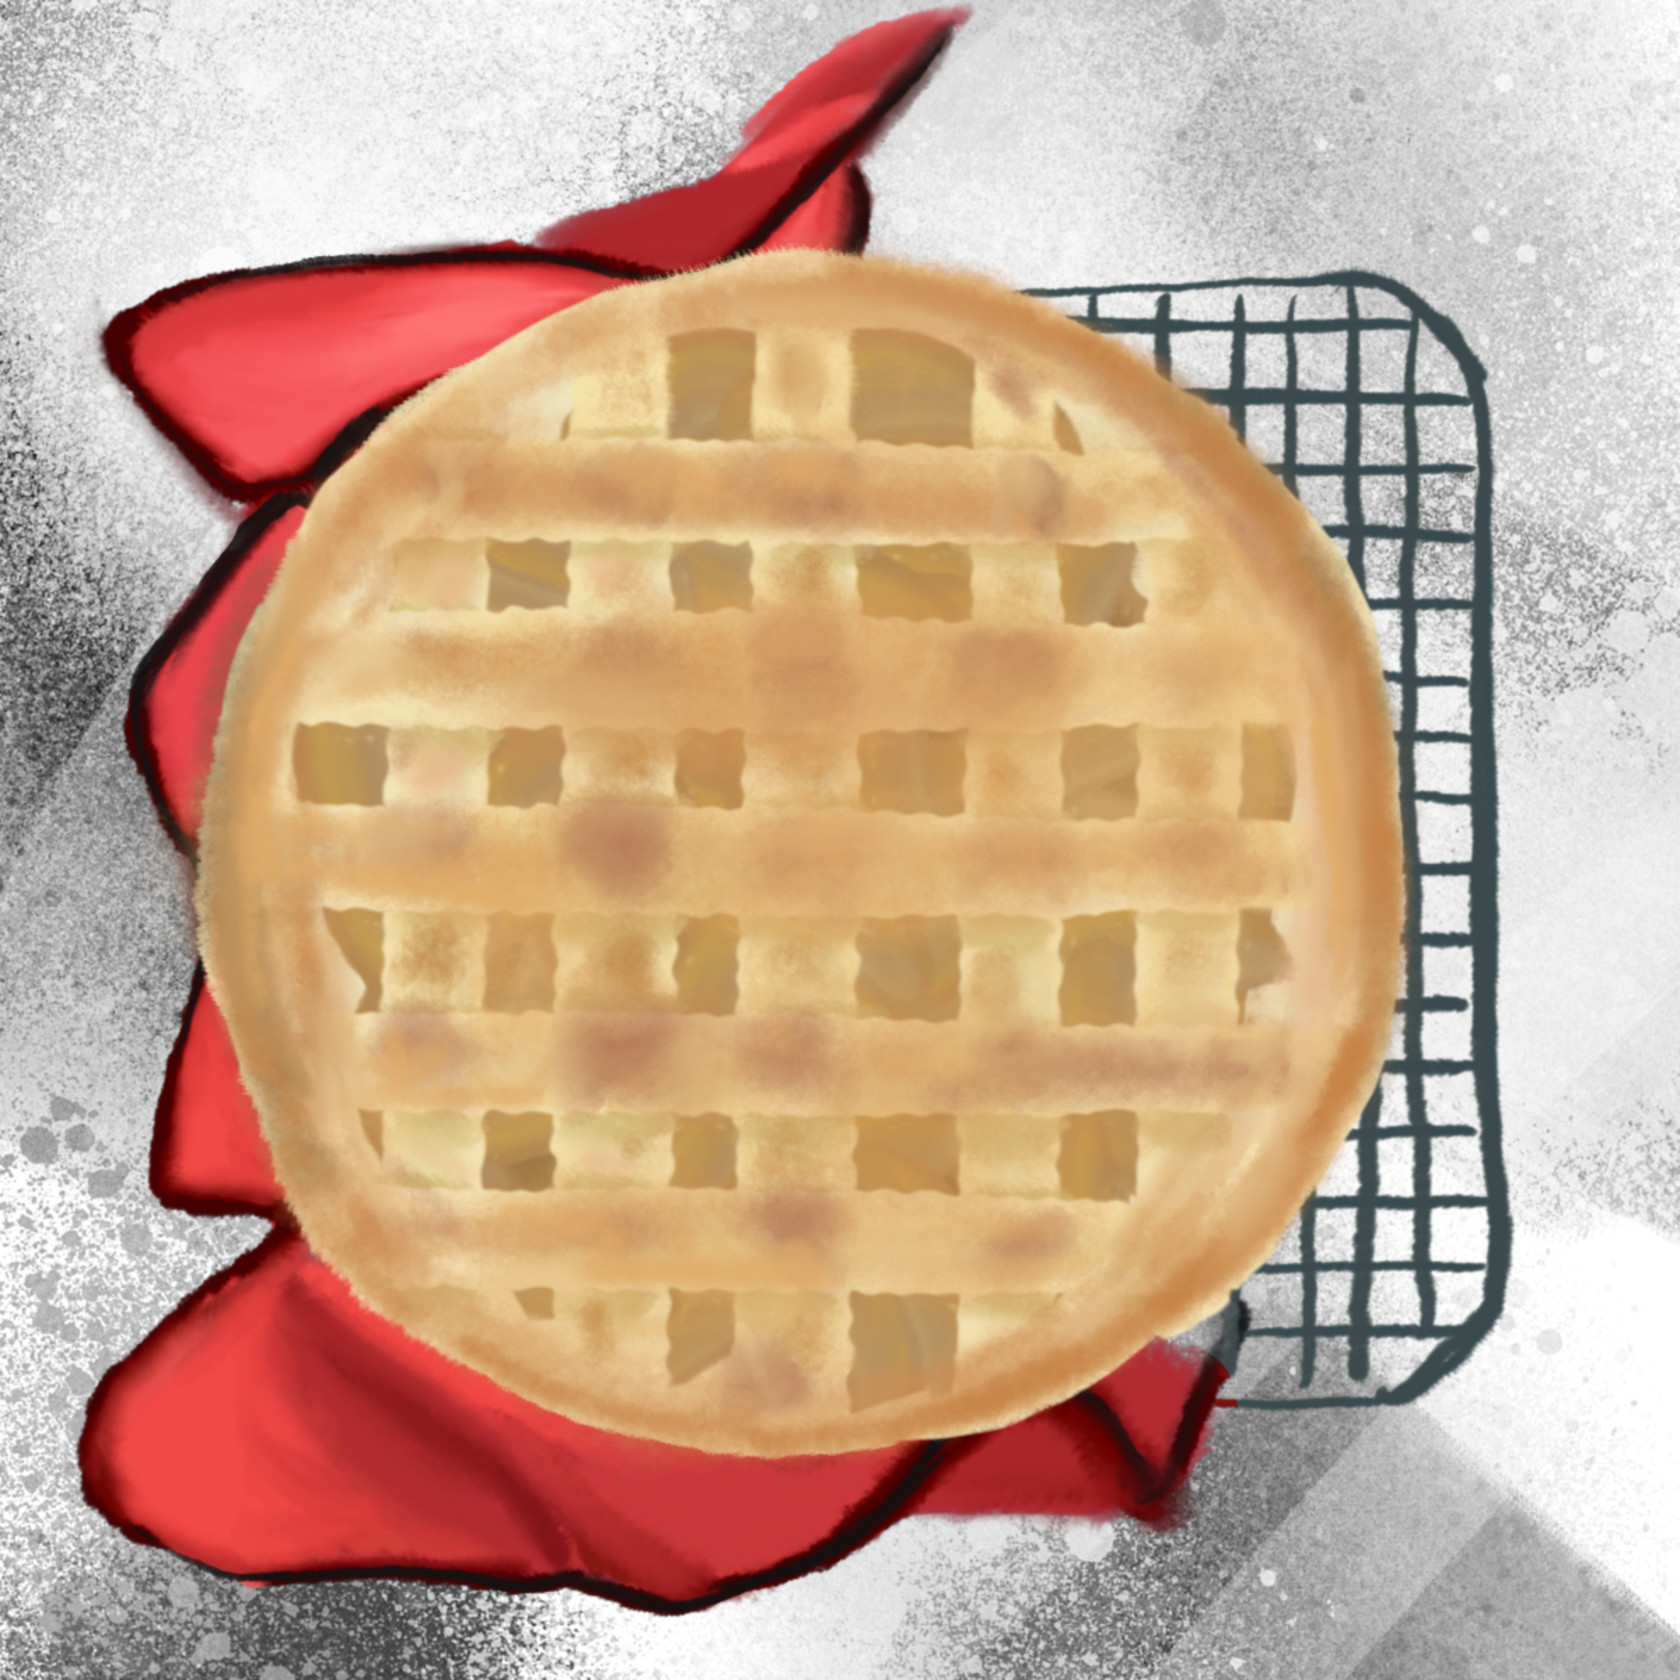 Apple pie 1200x1200